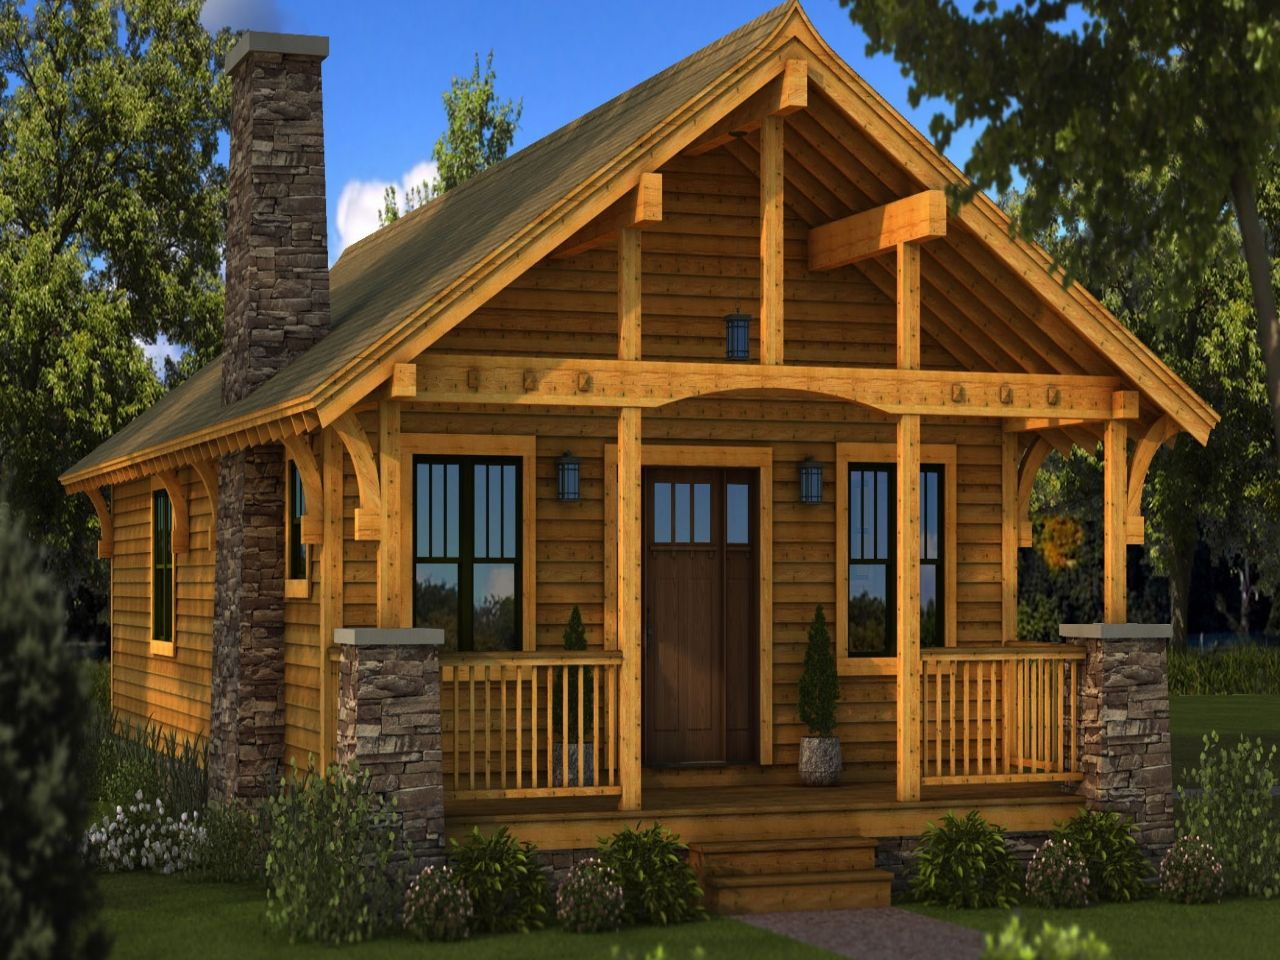 Kerala style home plans with photos for log cabin homes -  Style House Plans Mexzhouse Small Log Cabin Homes Plans Download